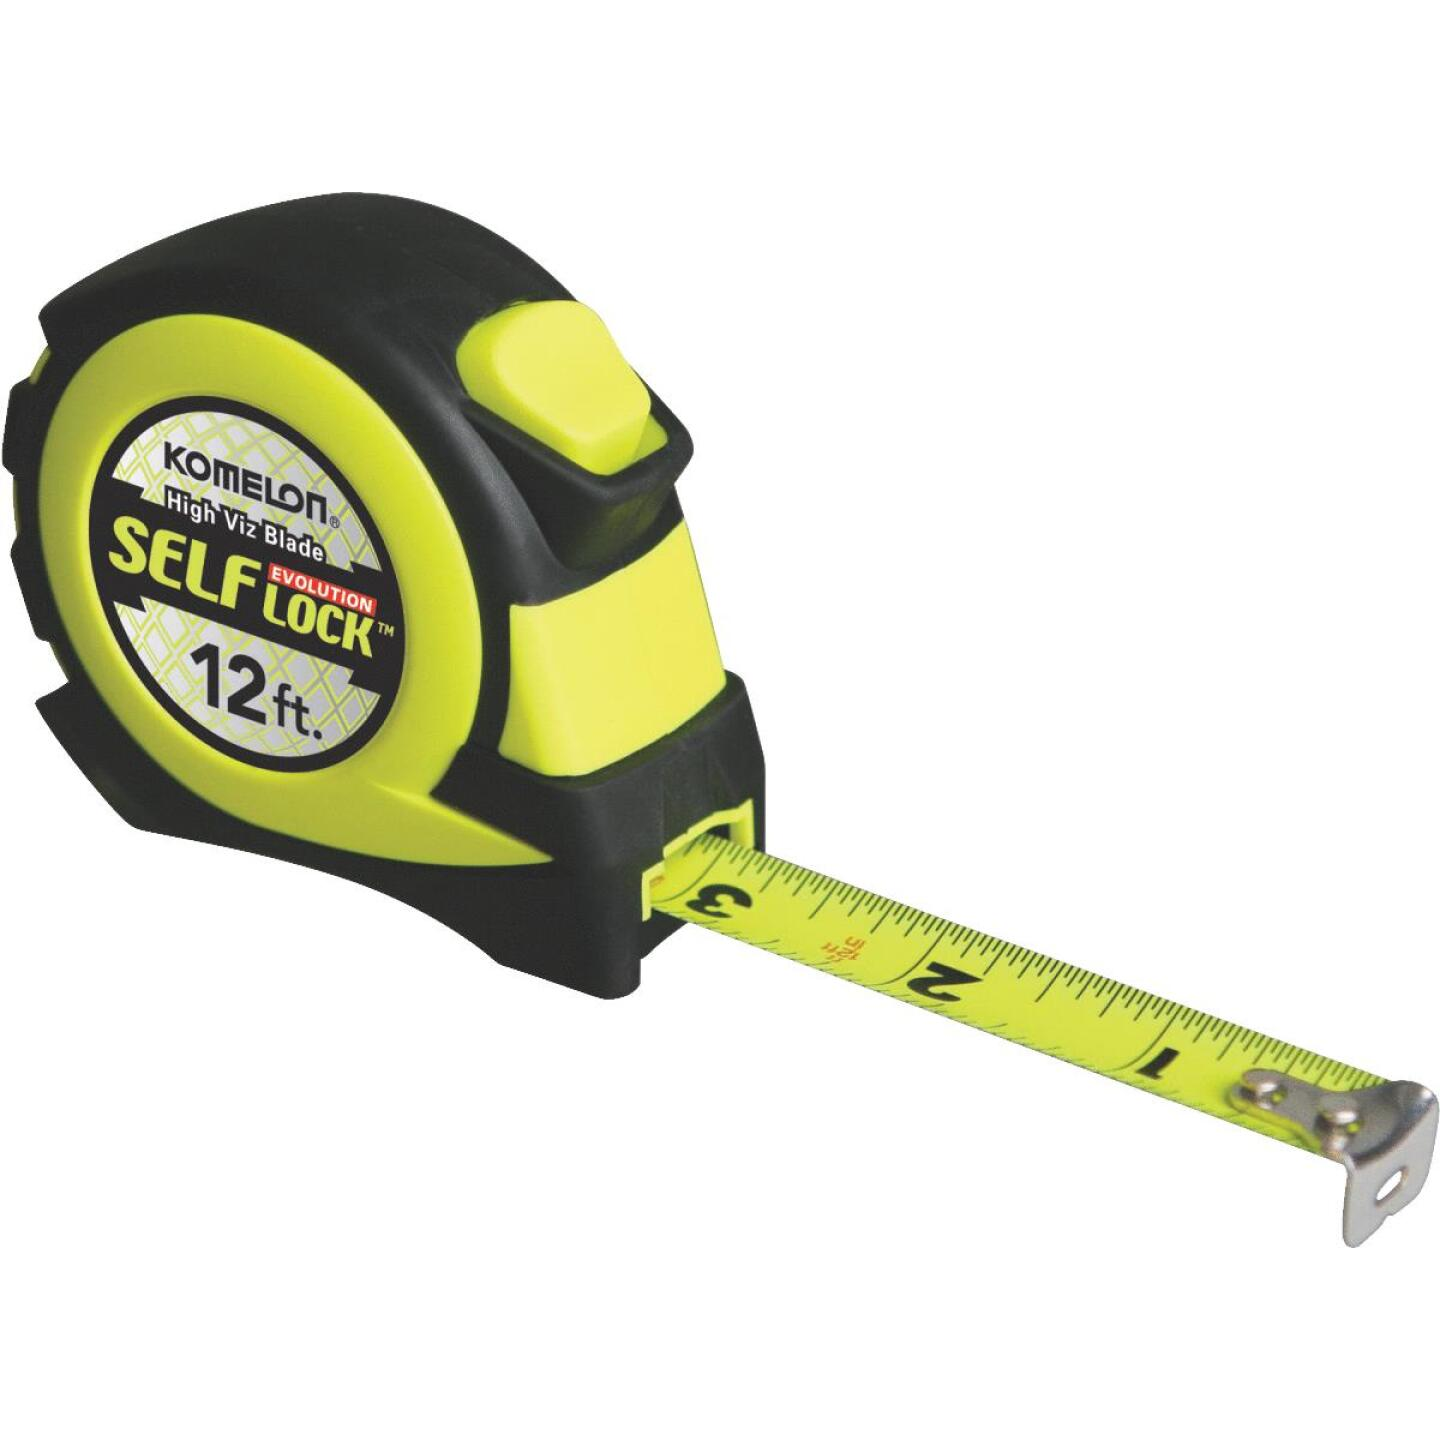 Komelon Evolution 12 Ft. Self-Lock Tape Measure Image 1